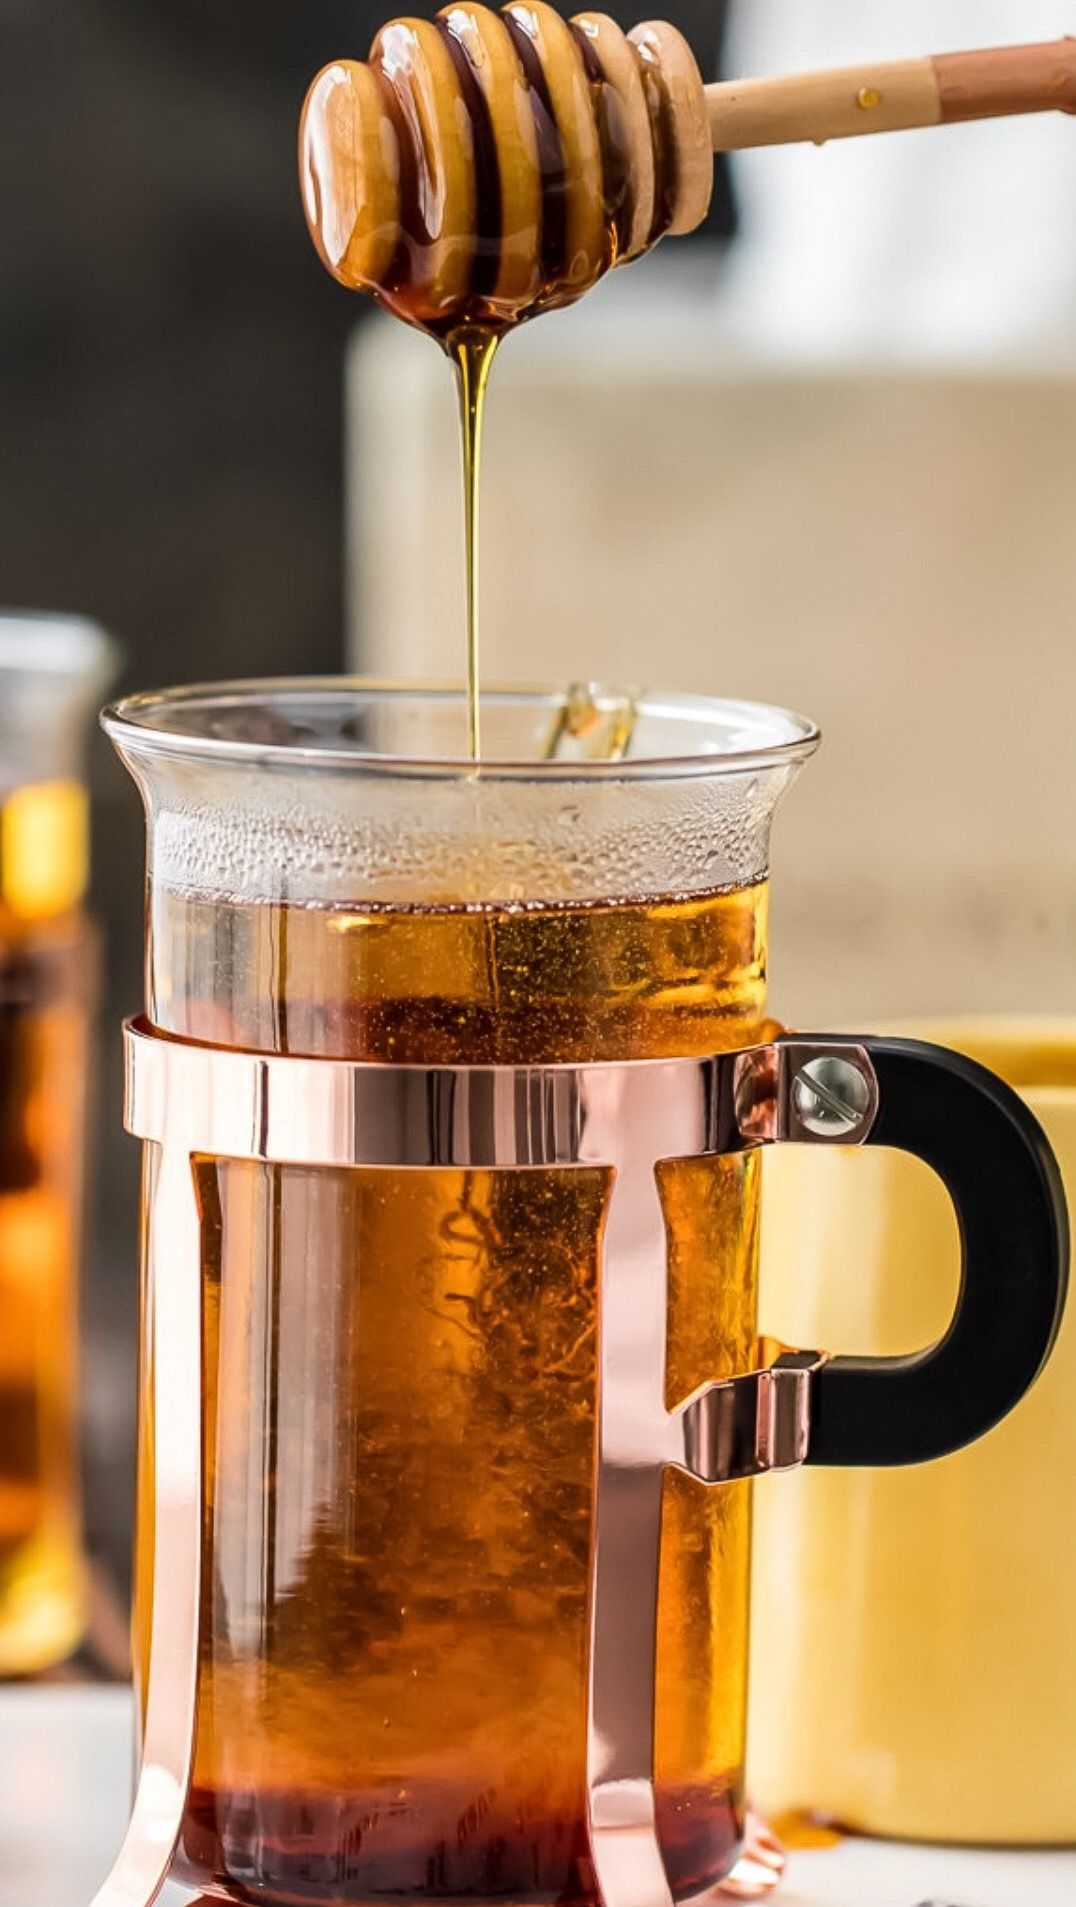 Hot toddy we do use good whiskey we also put cloves